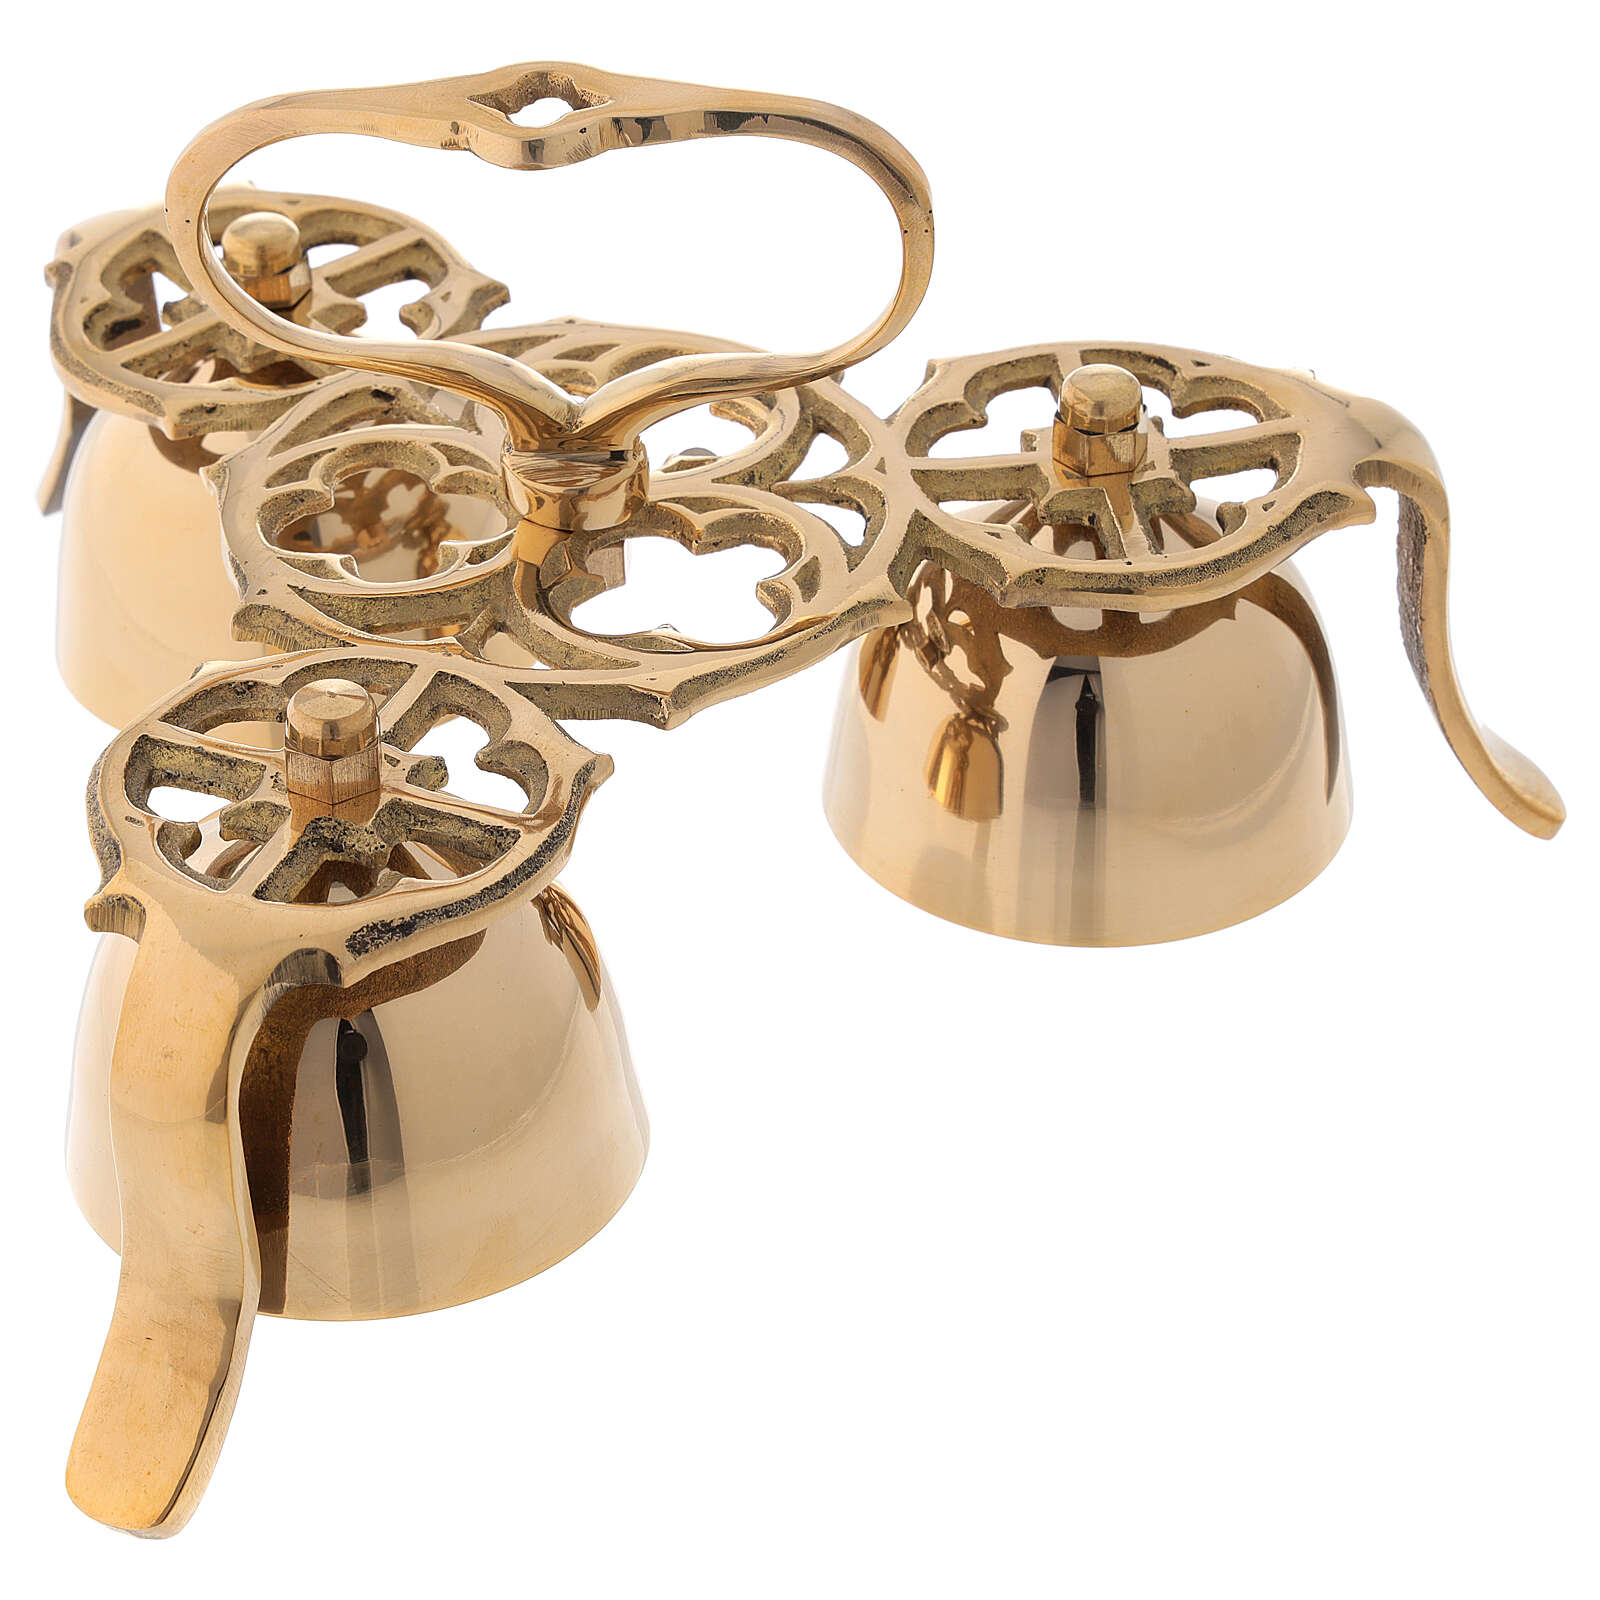 Liturgical bell three sounds gothic decoration 3